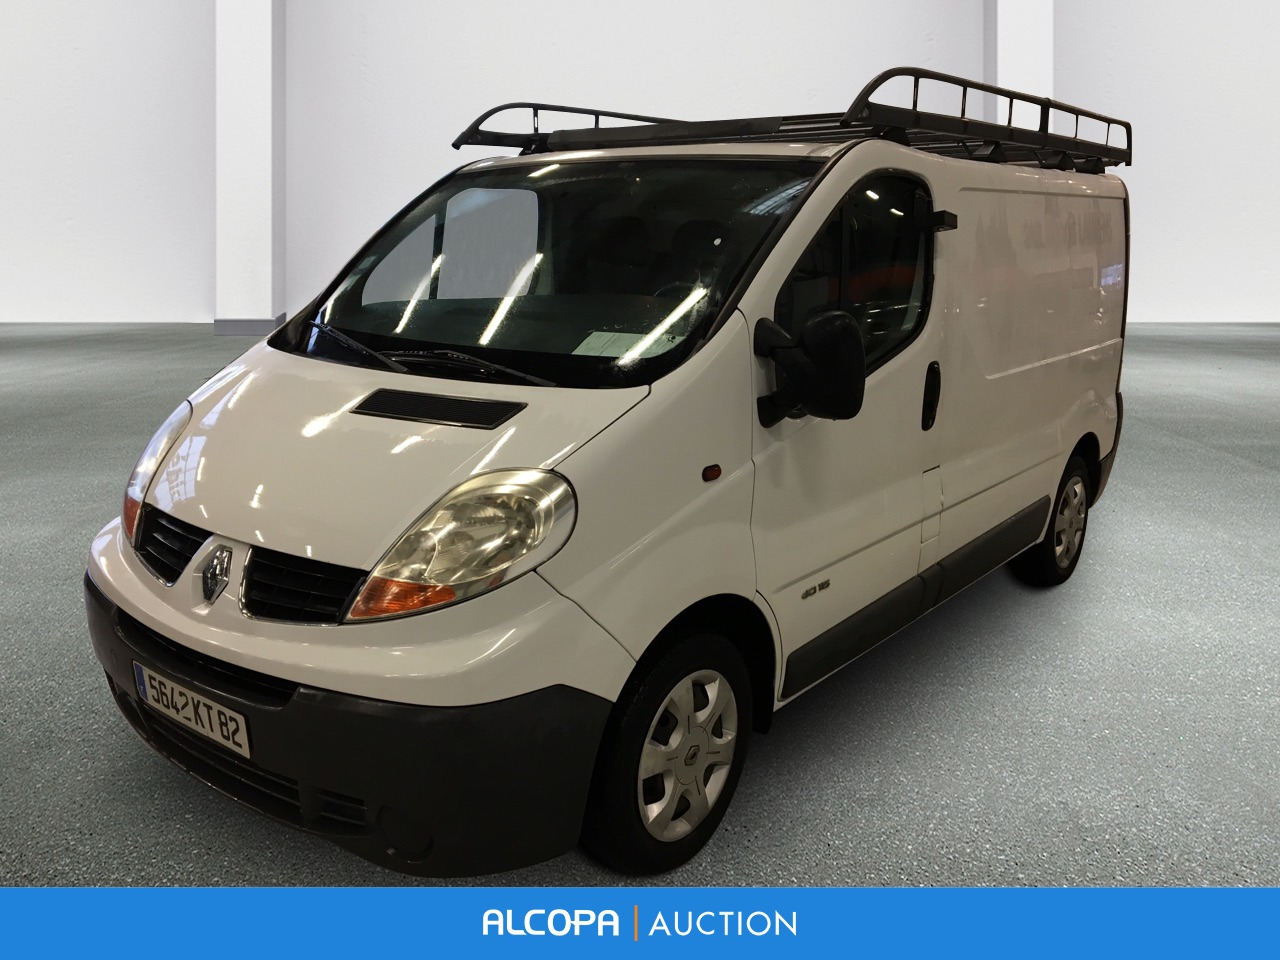 renault trafic fourgon trafic fgn 2 0 dci 115 l1h1 1000 kg grand confort alcopa auction. Black Bedroom Furniture Sets. Home Design Ideas